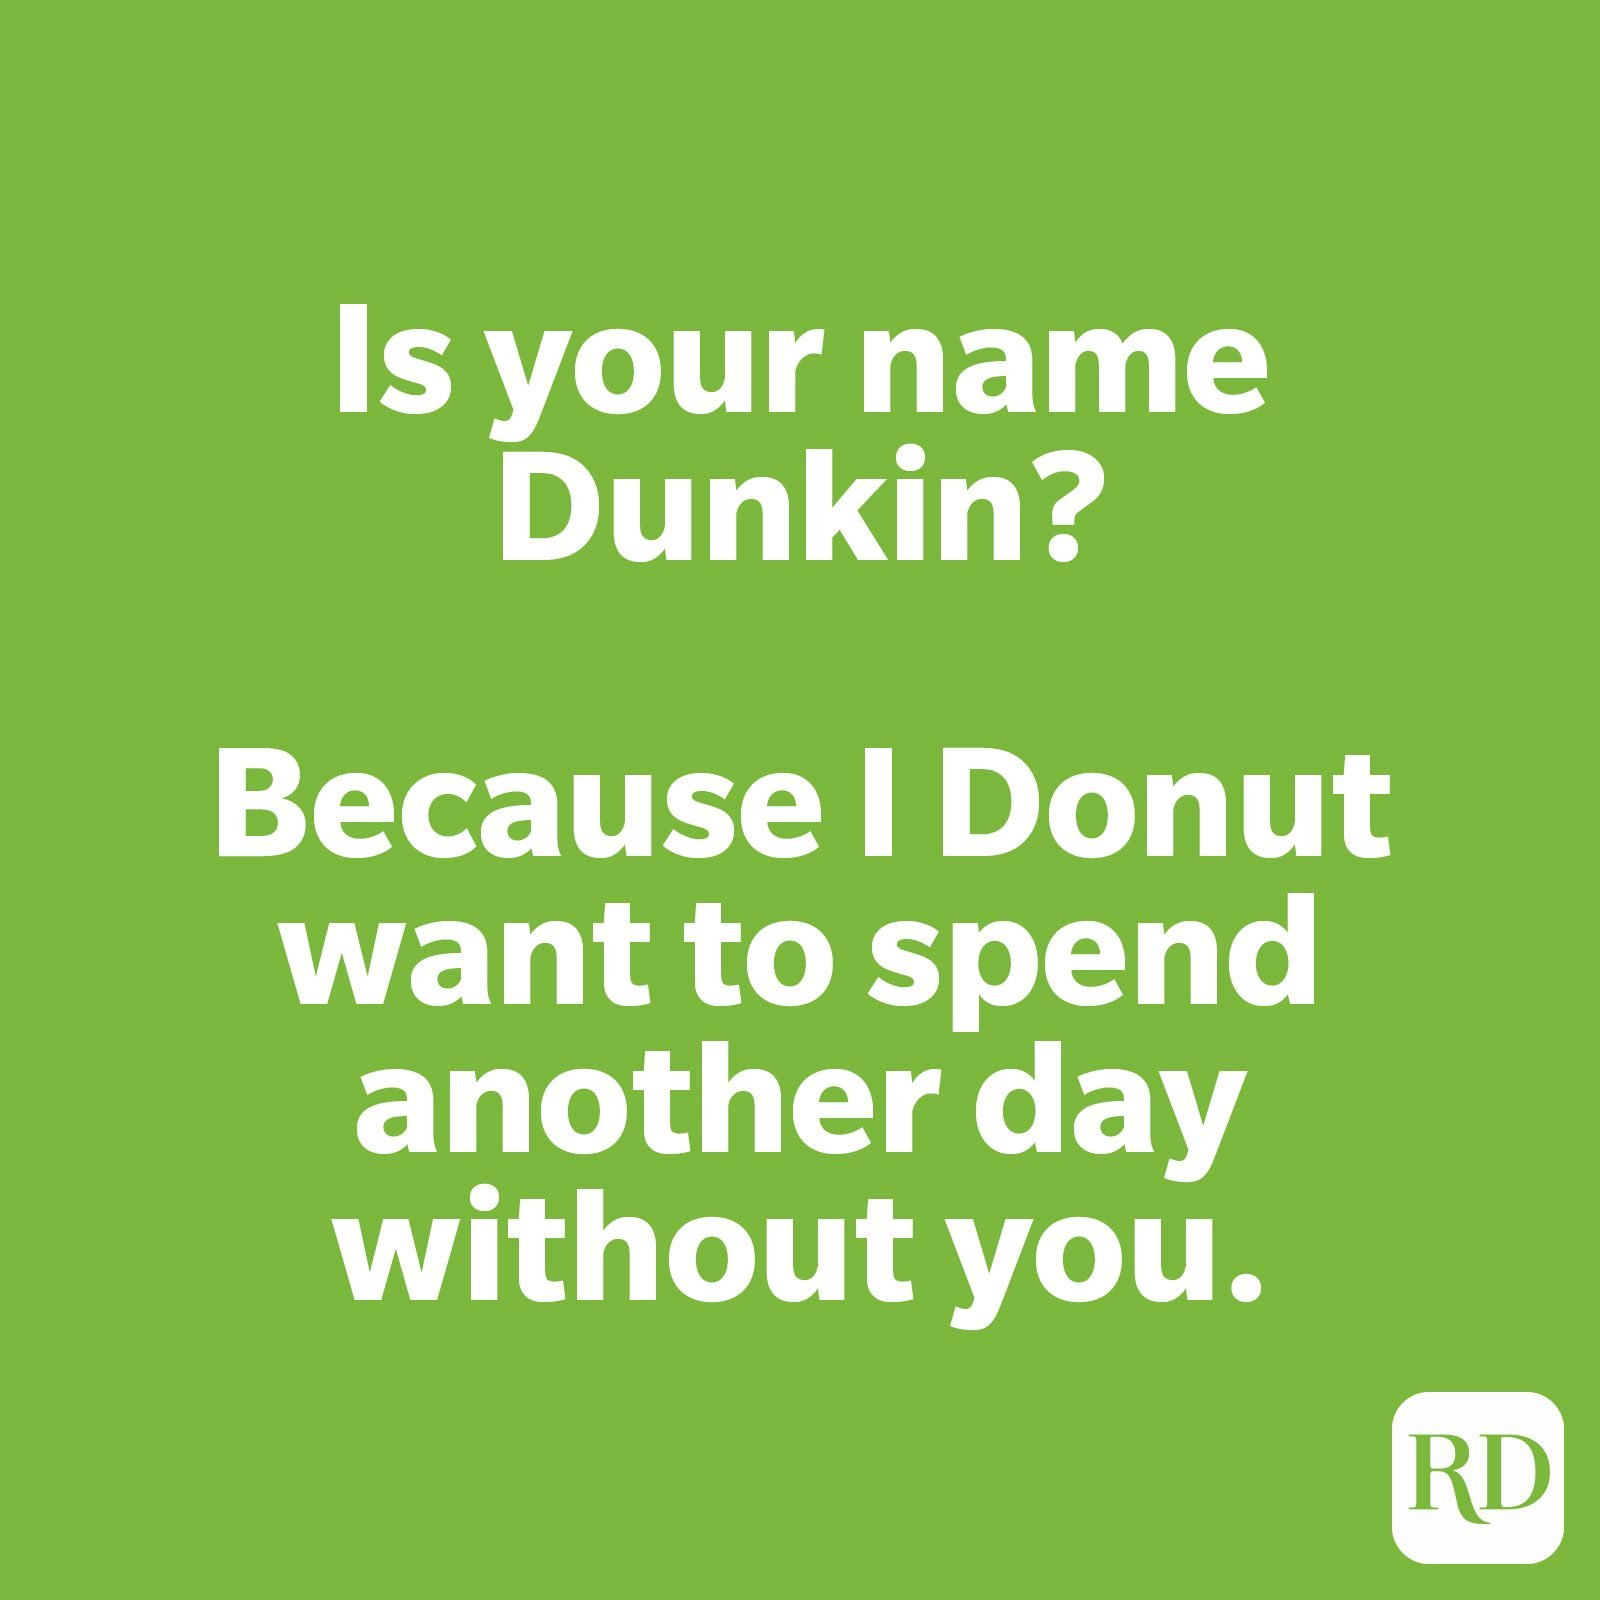 Is your name Dunkin? Because I Donut want to spend another day without you.